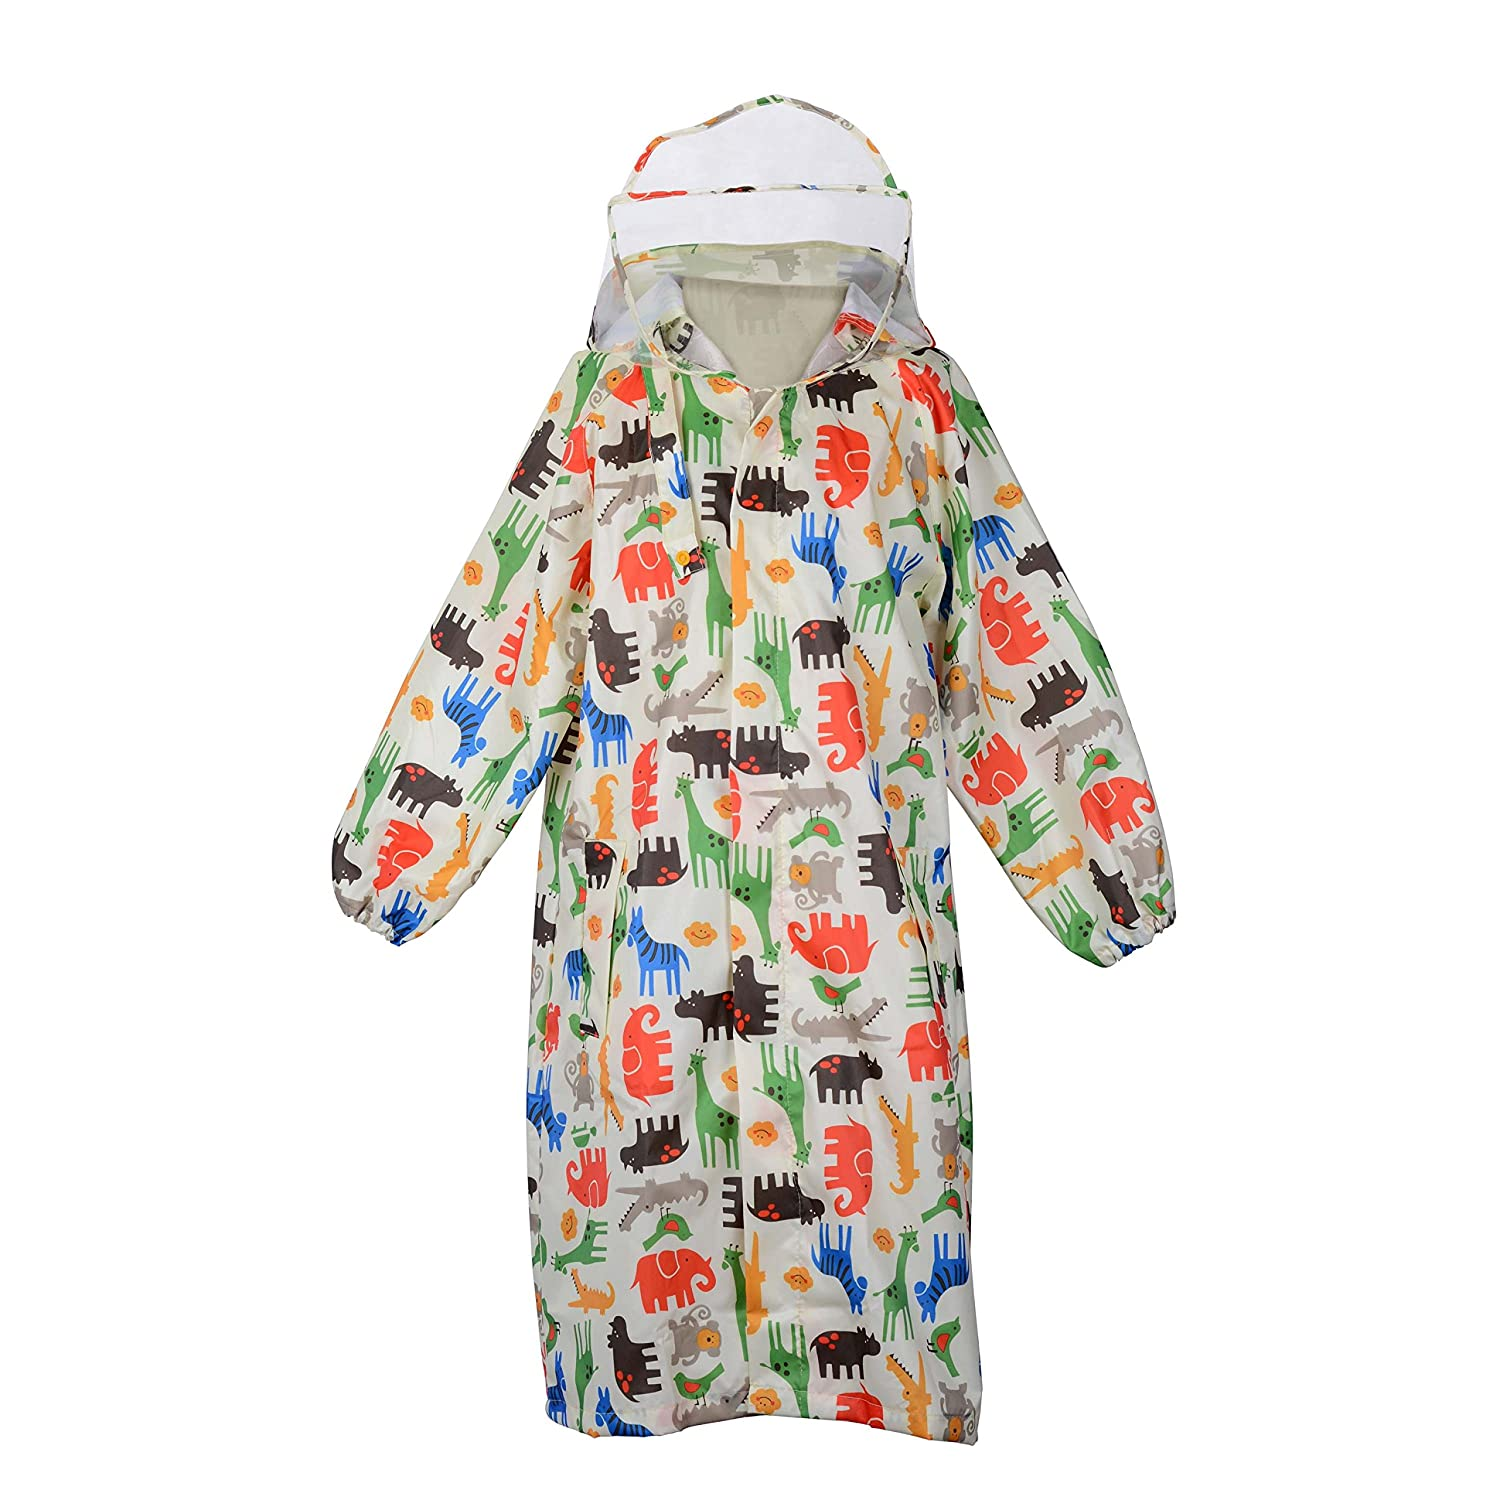 Wolfteeth Children Waterproof Kids Hooded Coat Jacket Outwear Raincoat for Travel, Outdoor, Camping, School, Riding Suit Age 2-10 Years Riding Suit Age 4-6 Years 4025002UK